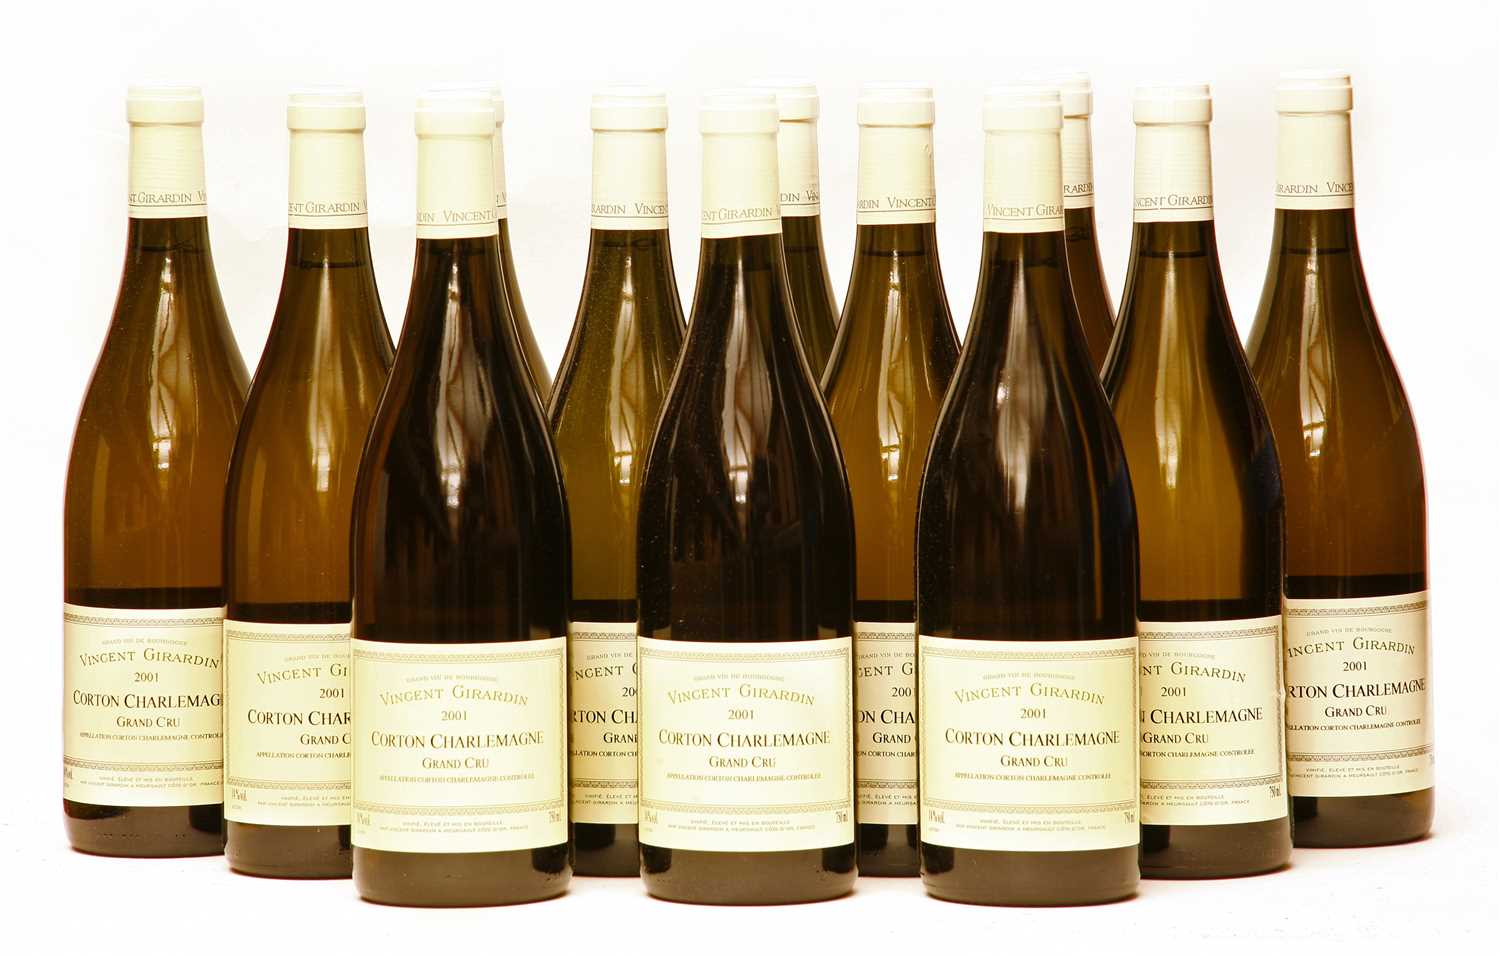 Lot 8 - Vincent Girardin, Corton Charlemagne, Grand Cru, 2001, twelve bottles (boxed)